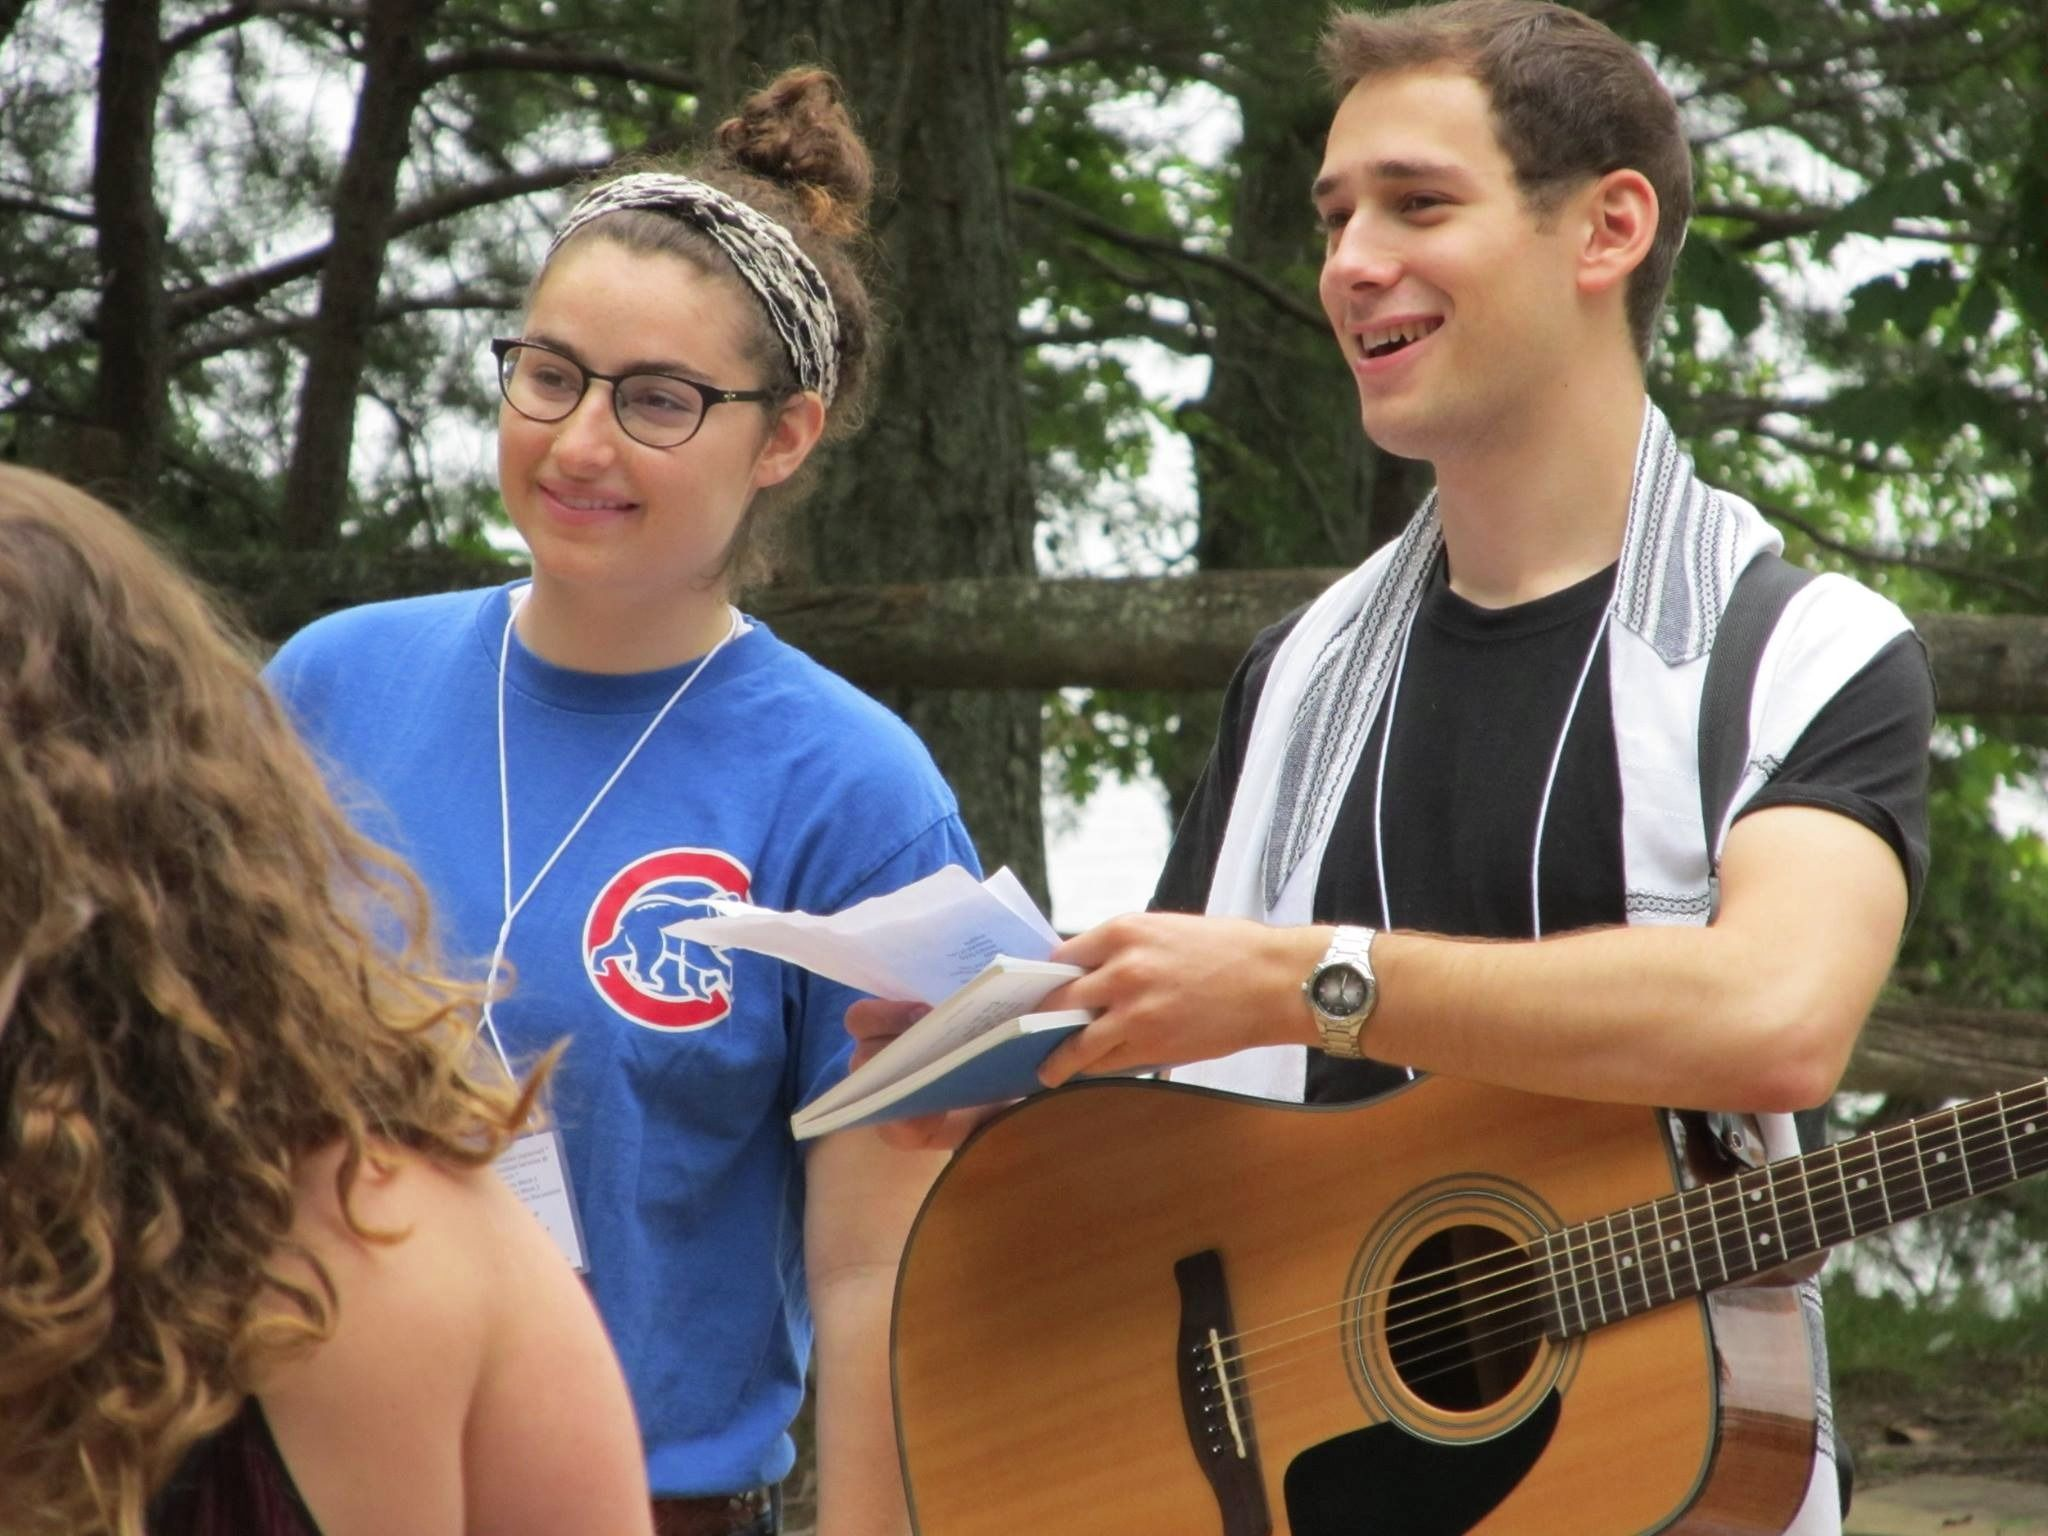 Danny Dubin leads services at an American University Hillel retreat.